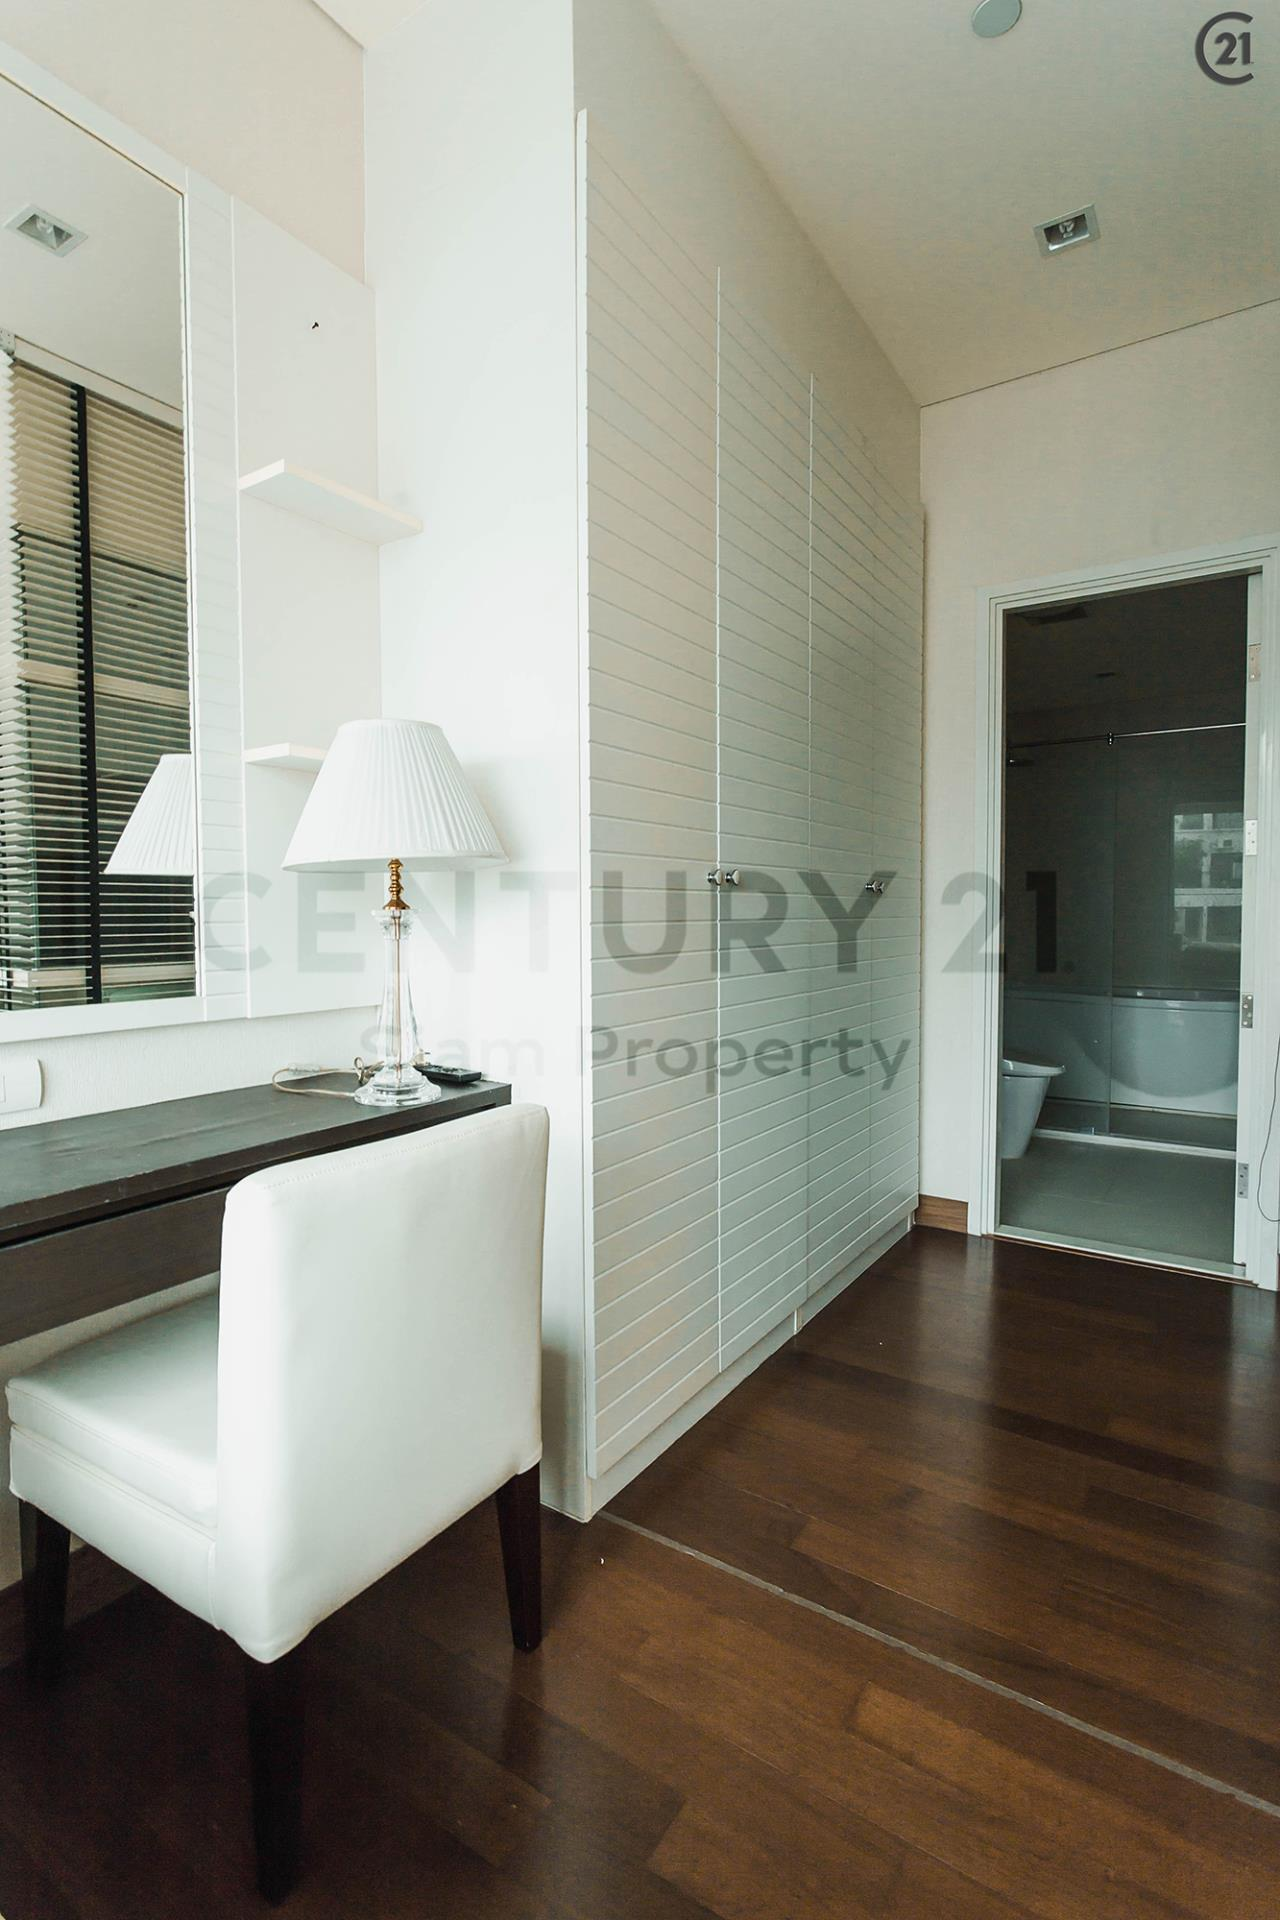 Century21 Siam Property Agency's Ivy Thonglor 10